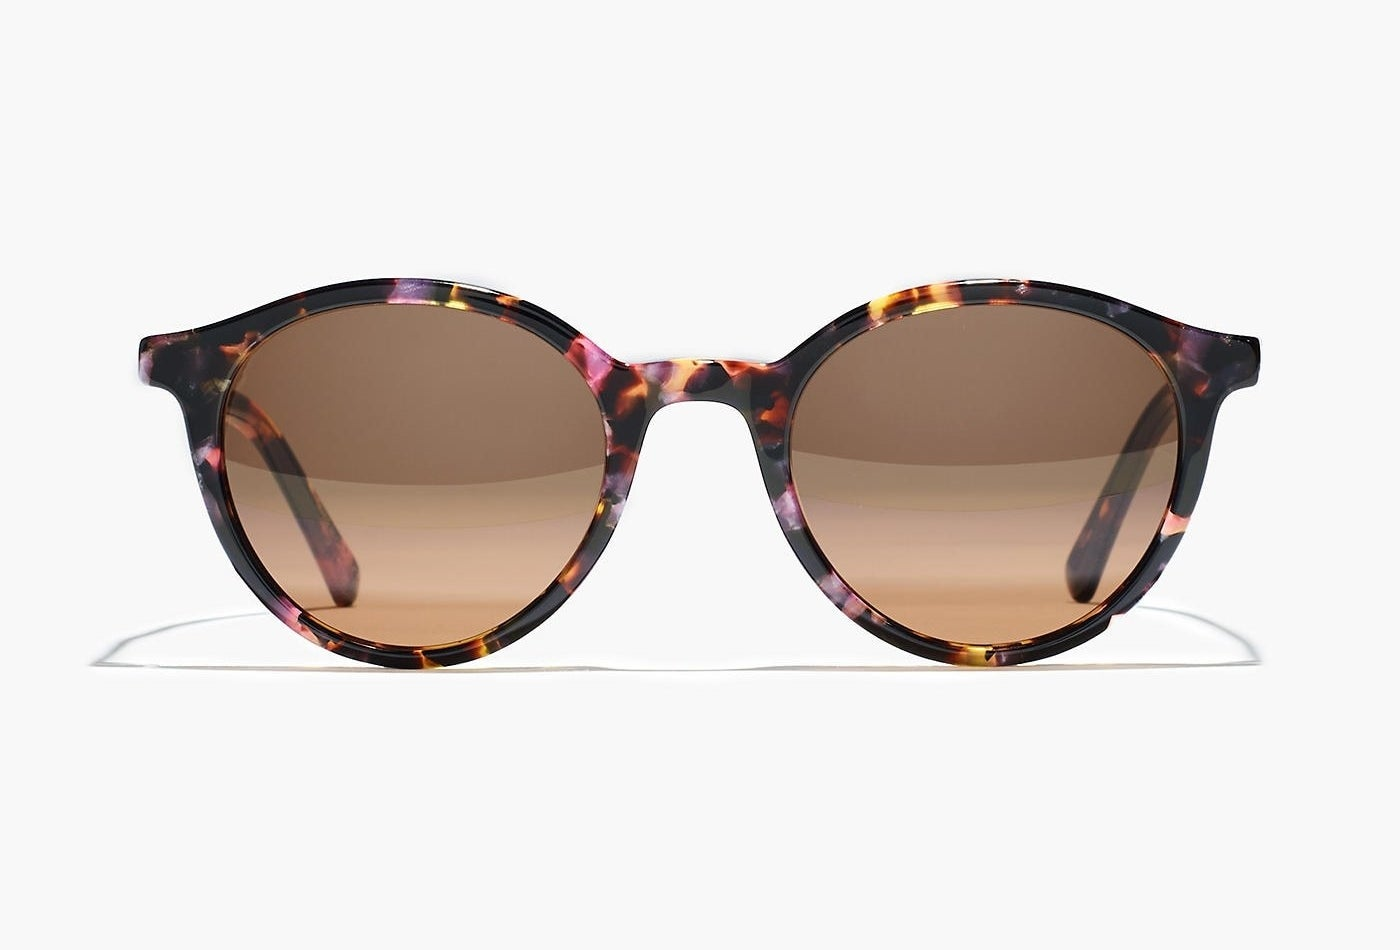 The rounded sunglasses with pink, purple, and brown tortoise-shell and brown lenses